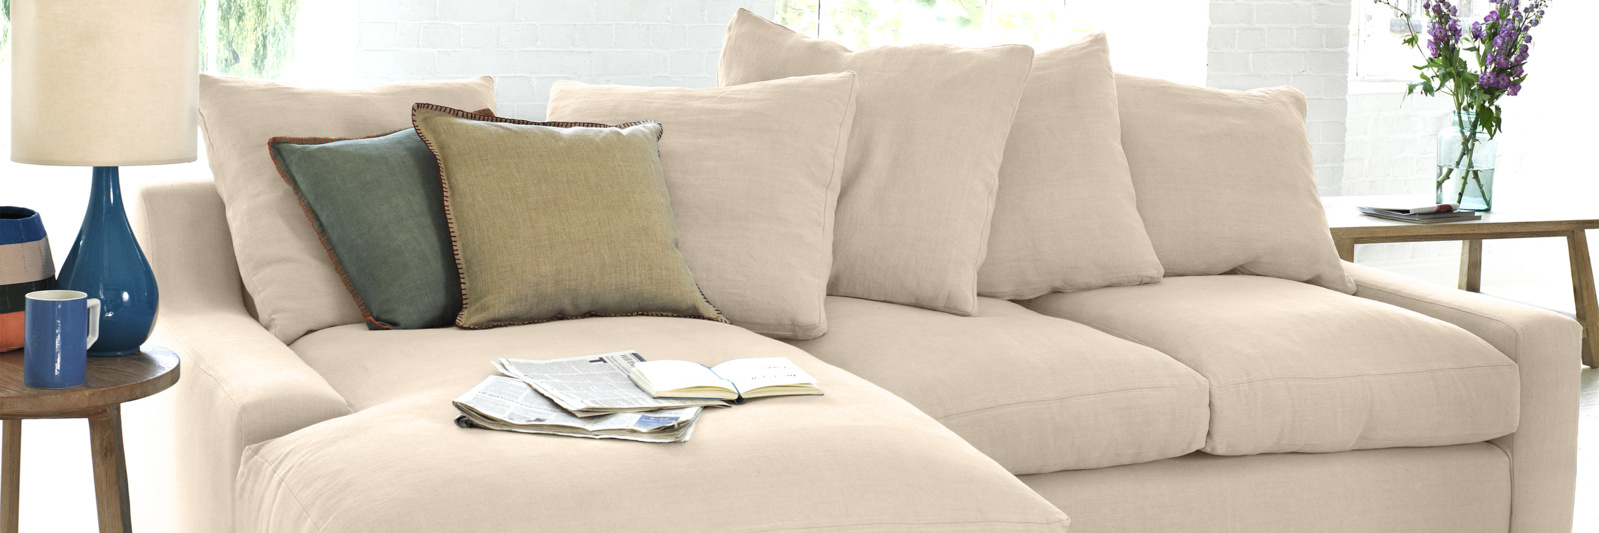 Cloud chaise sofa in neutral  fabric